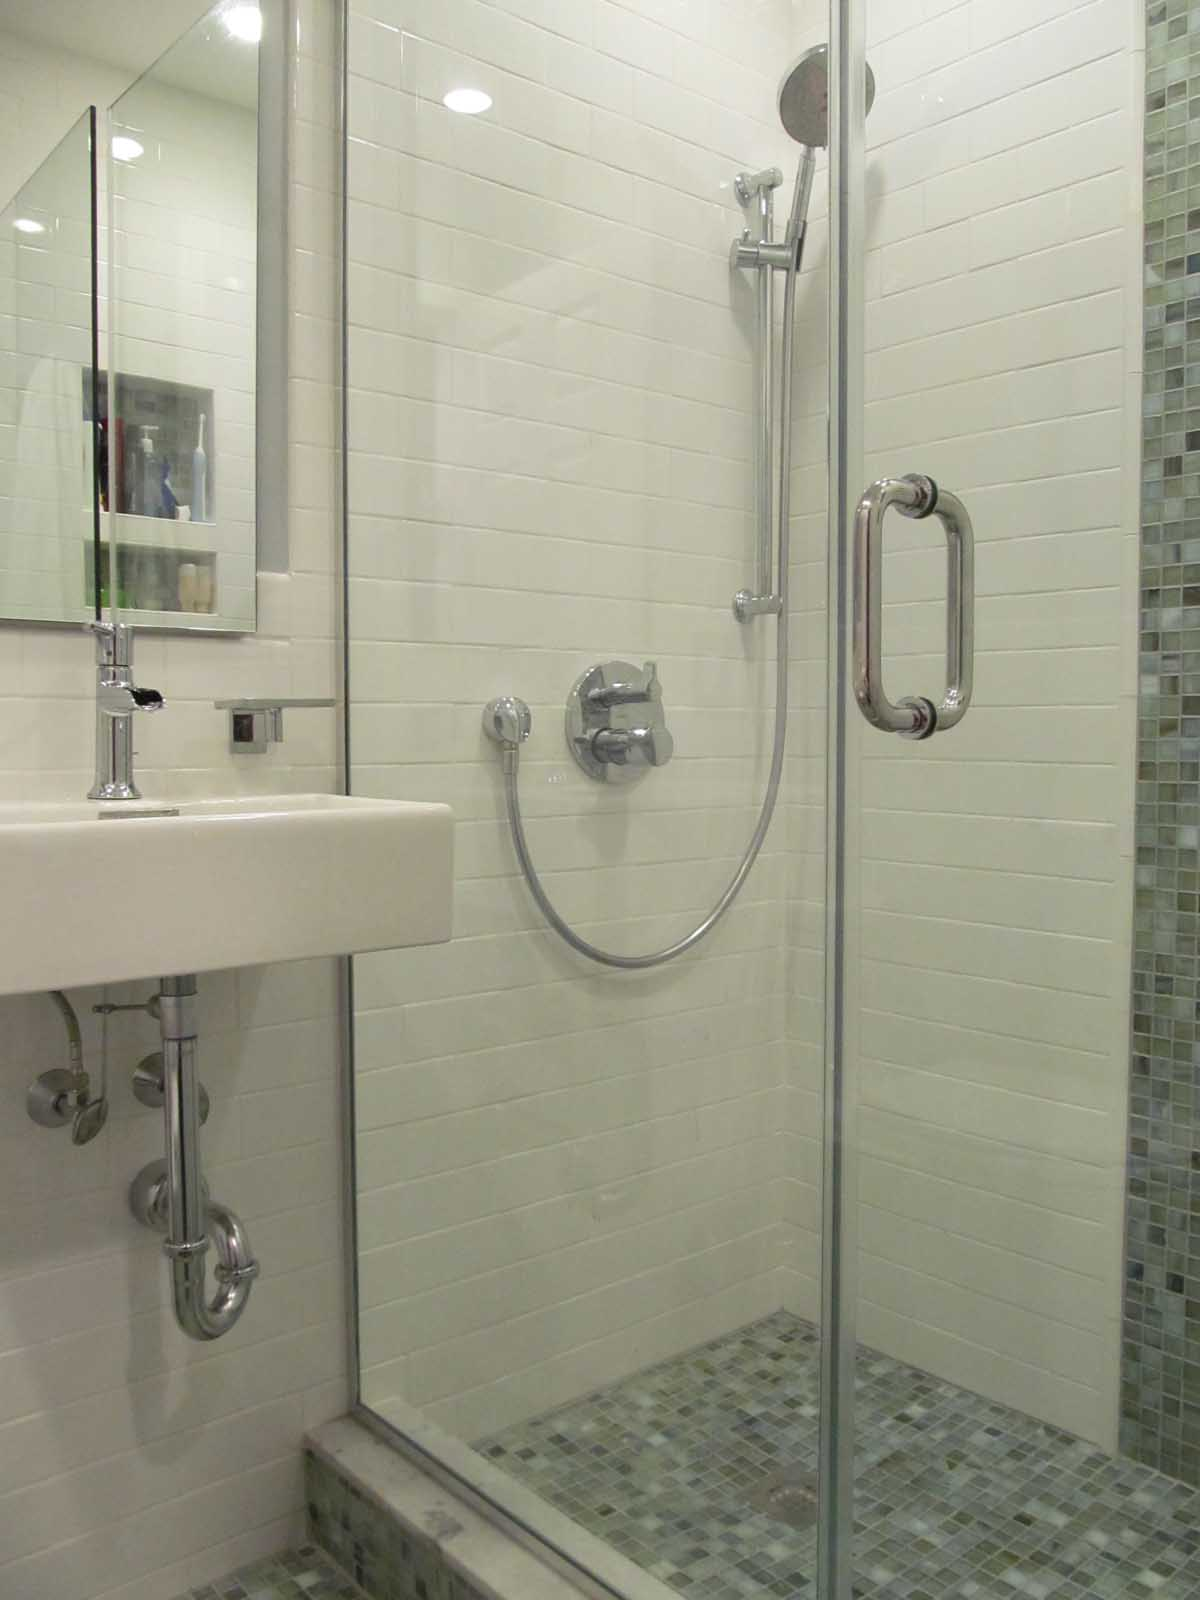 Shower Details - Bathroom Remodel - Bay State Refinishing & Remodeling